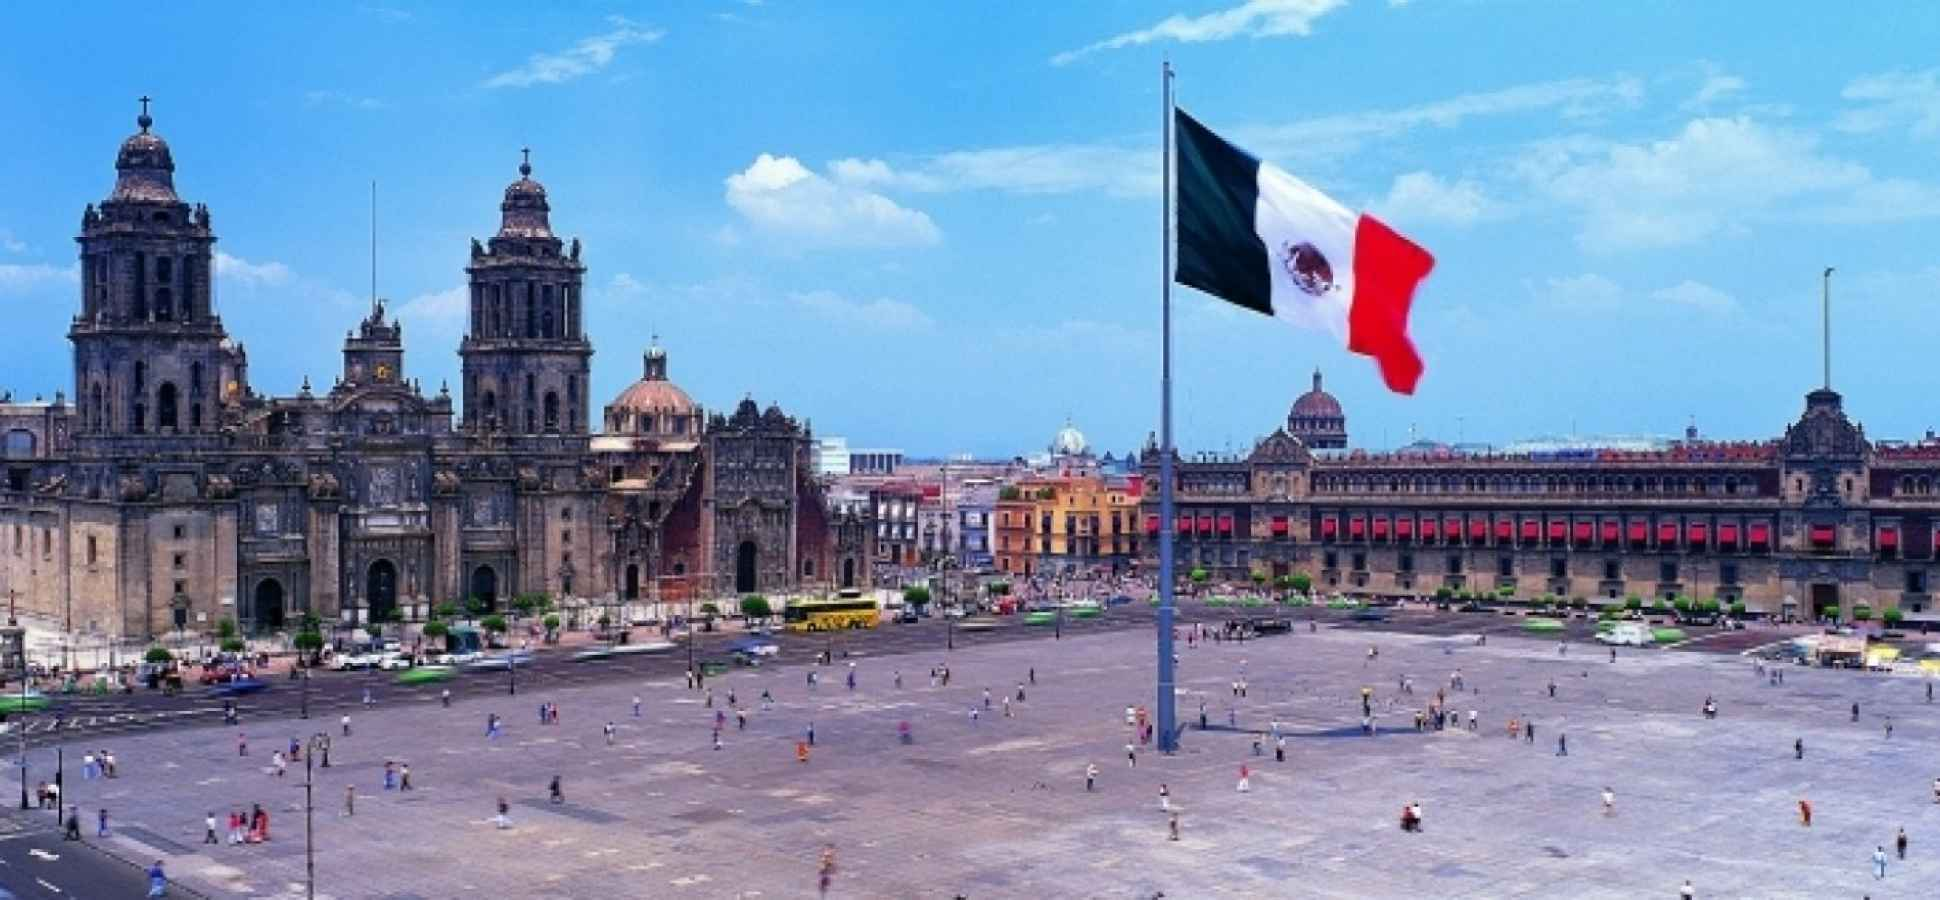 15 Hot Mexico City Startups to Look Out For in 2015